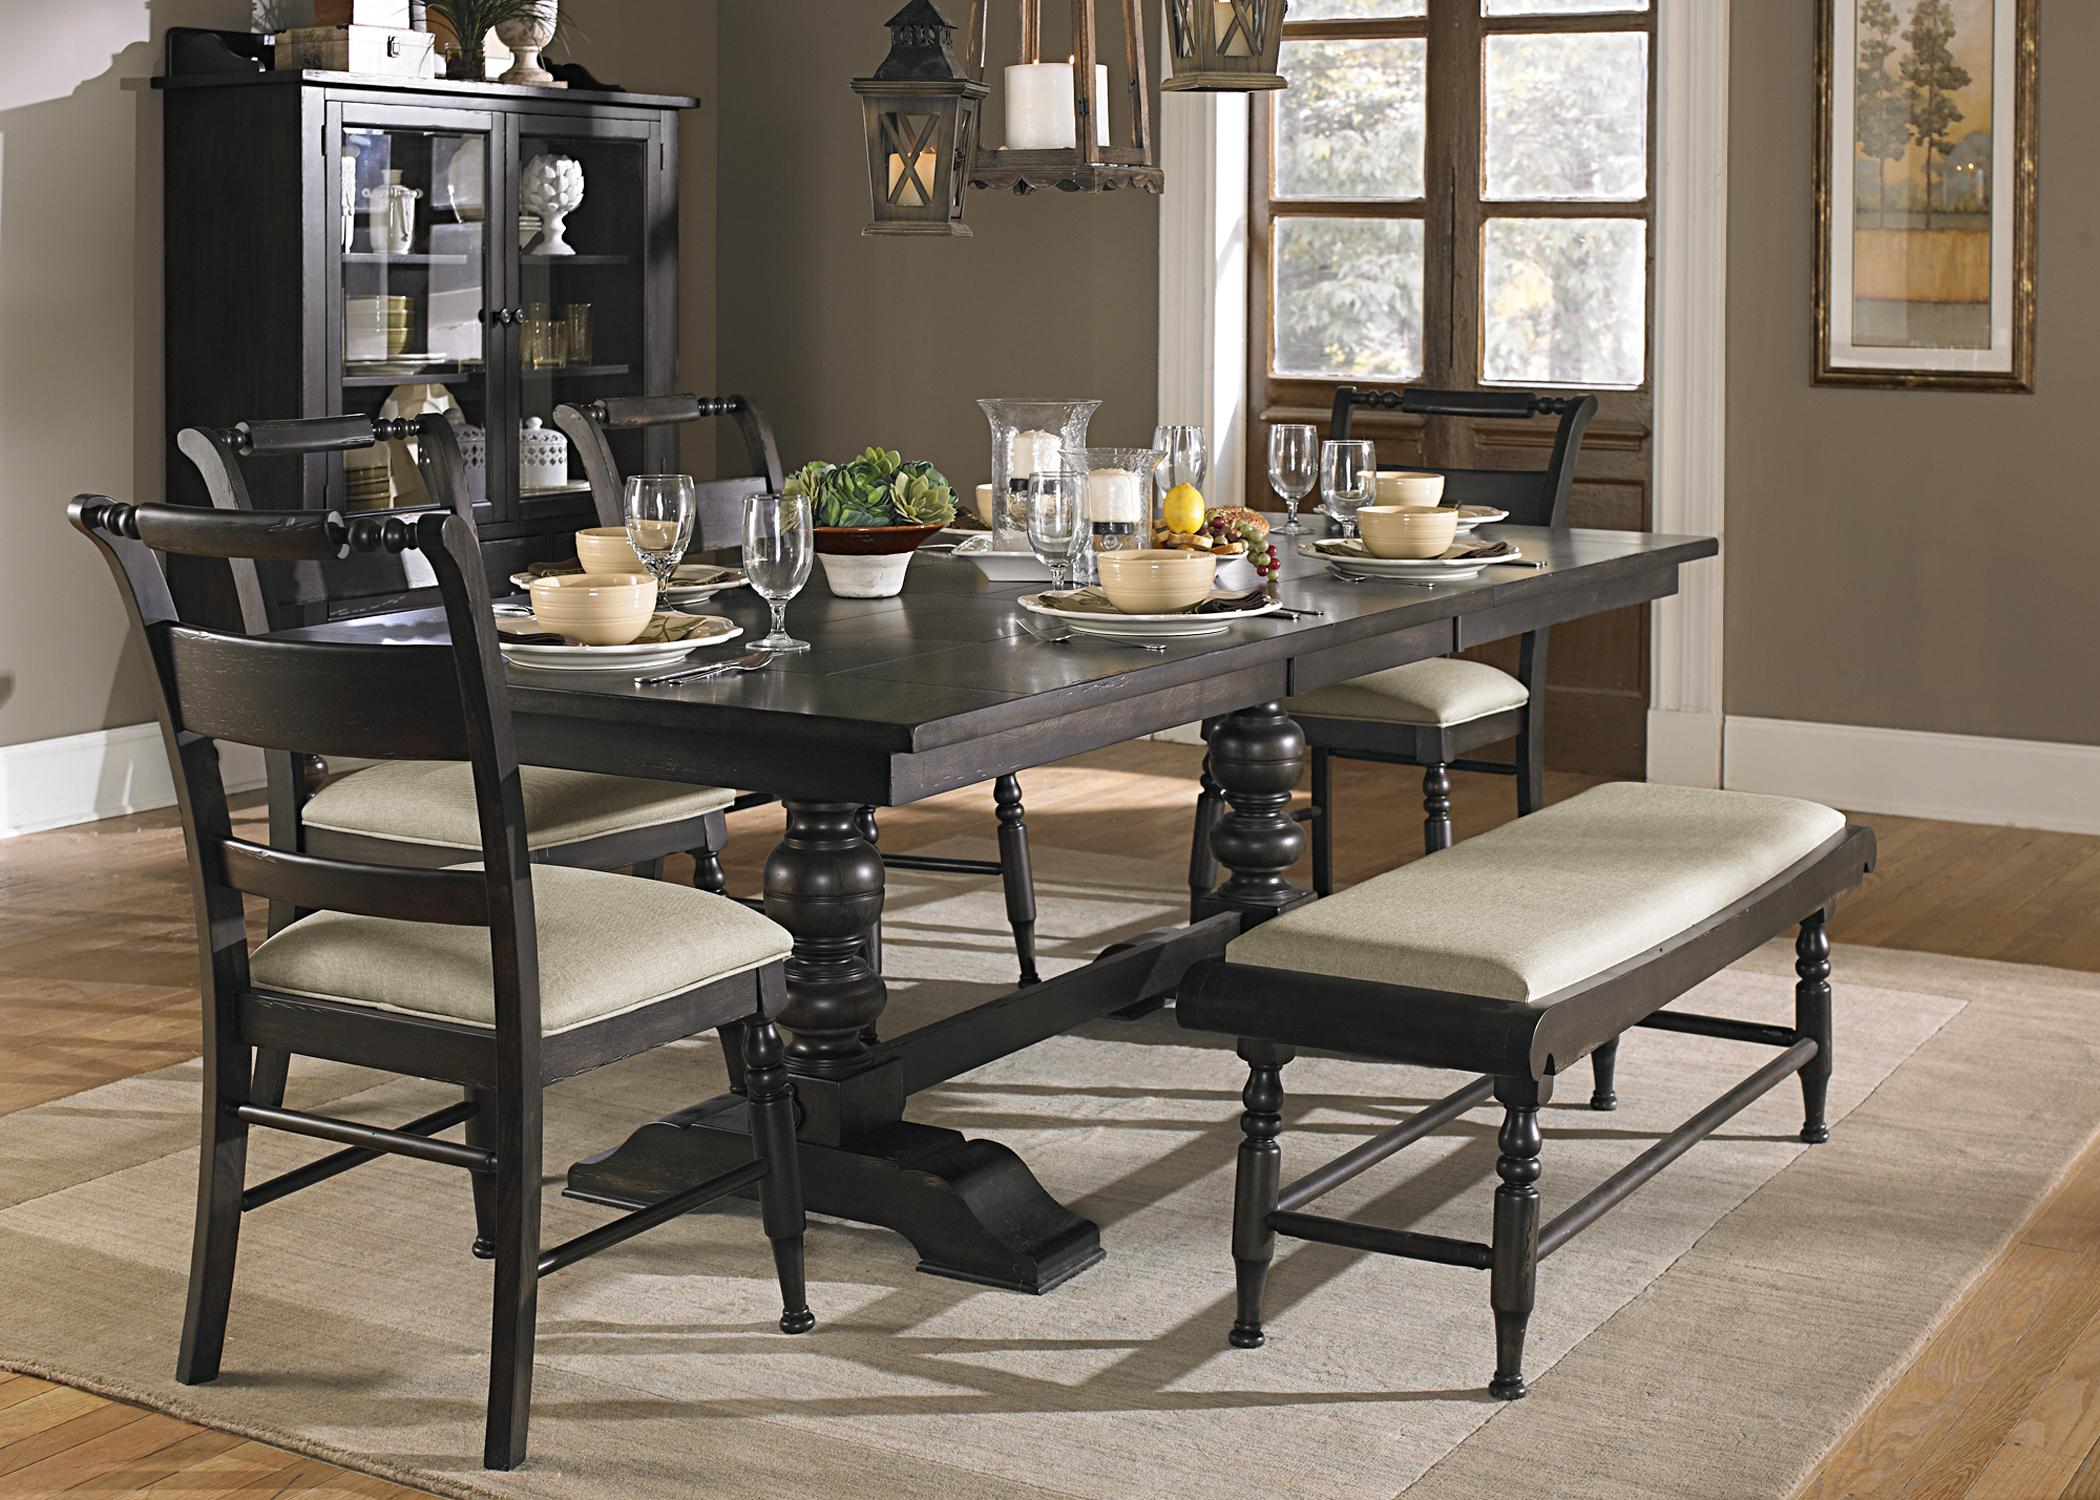 Liberty Furniture Whitney 7 Piece Trestle Dining Room Table Set ...